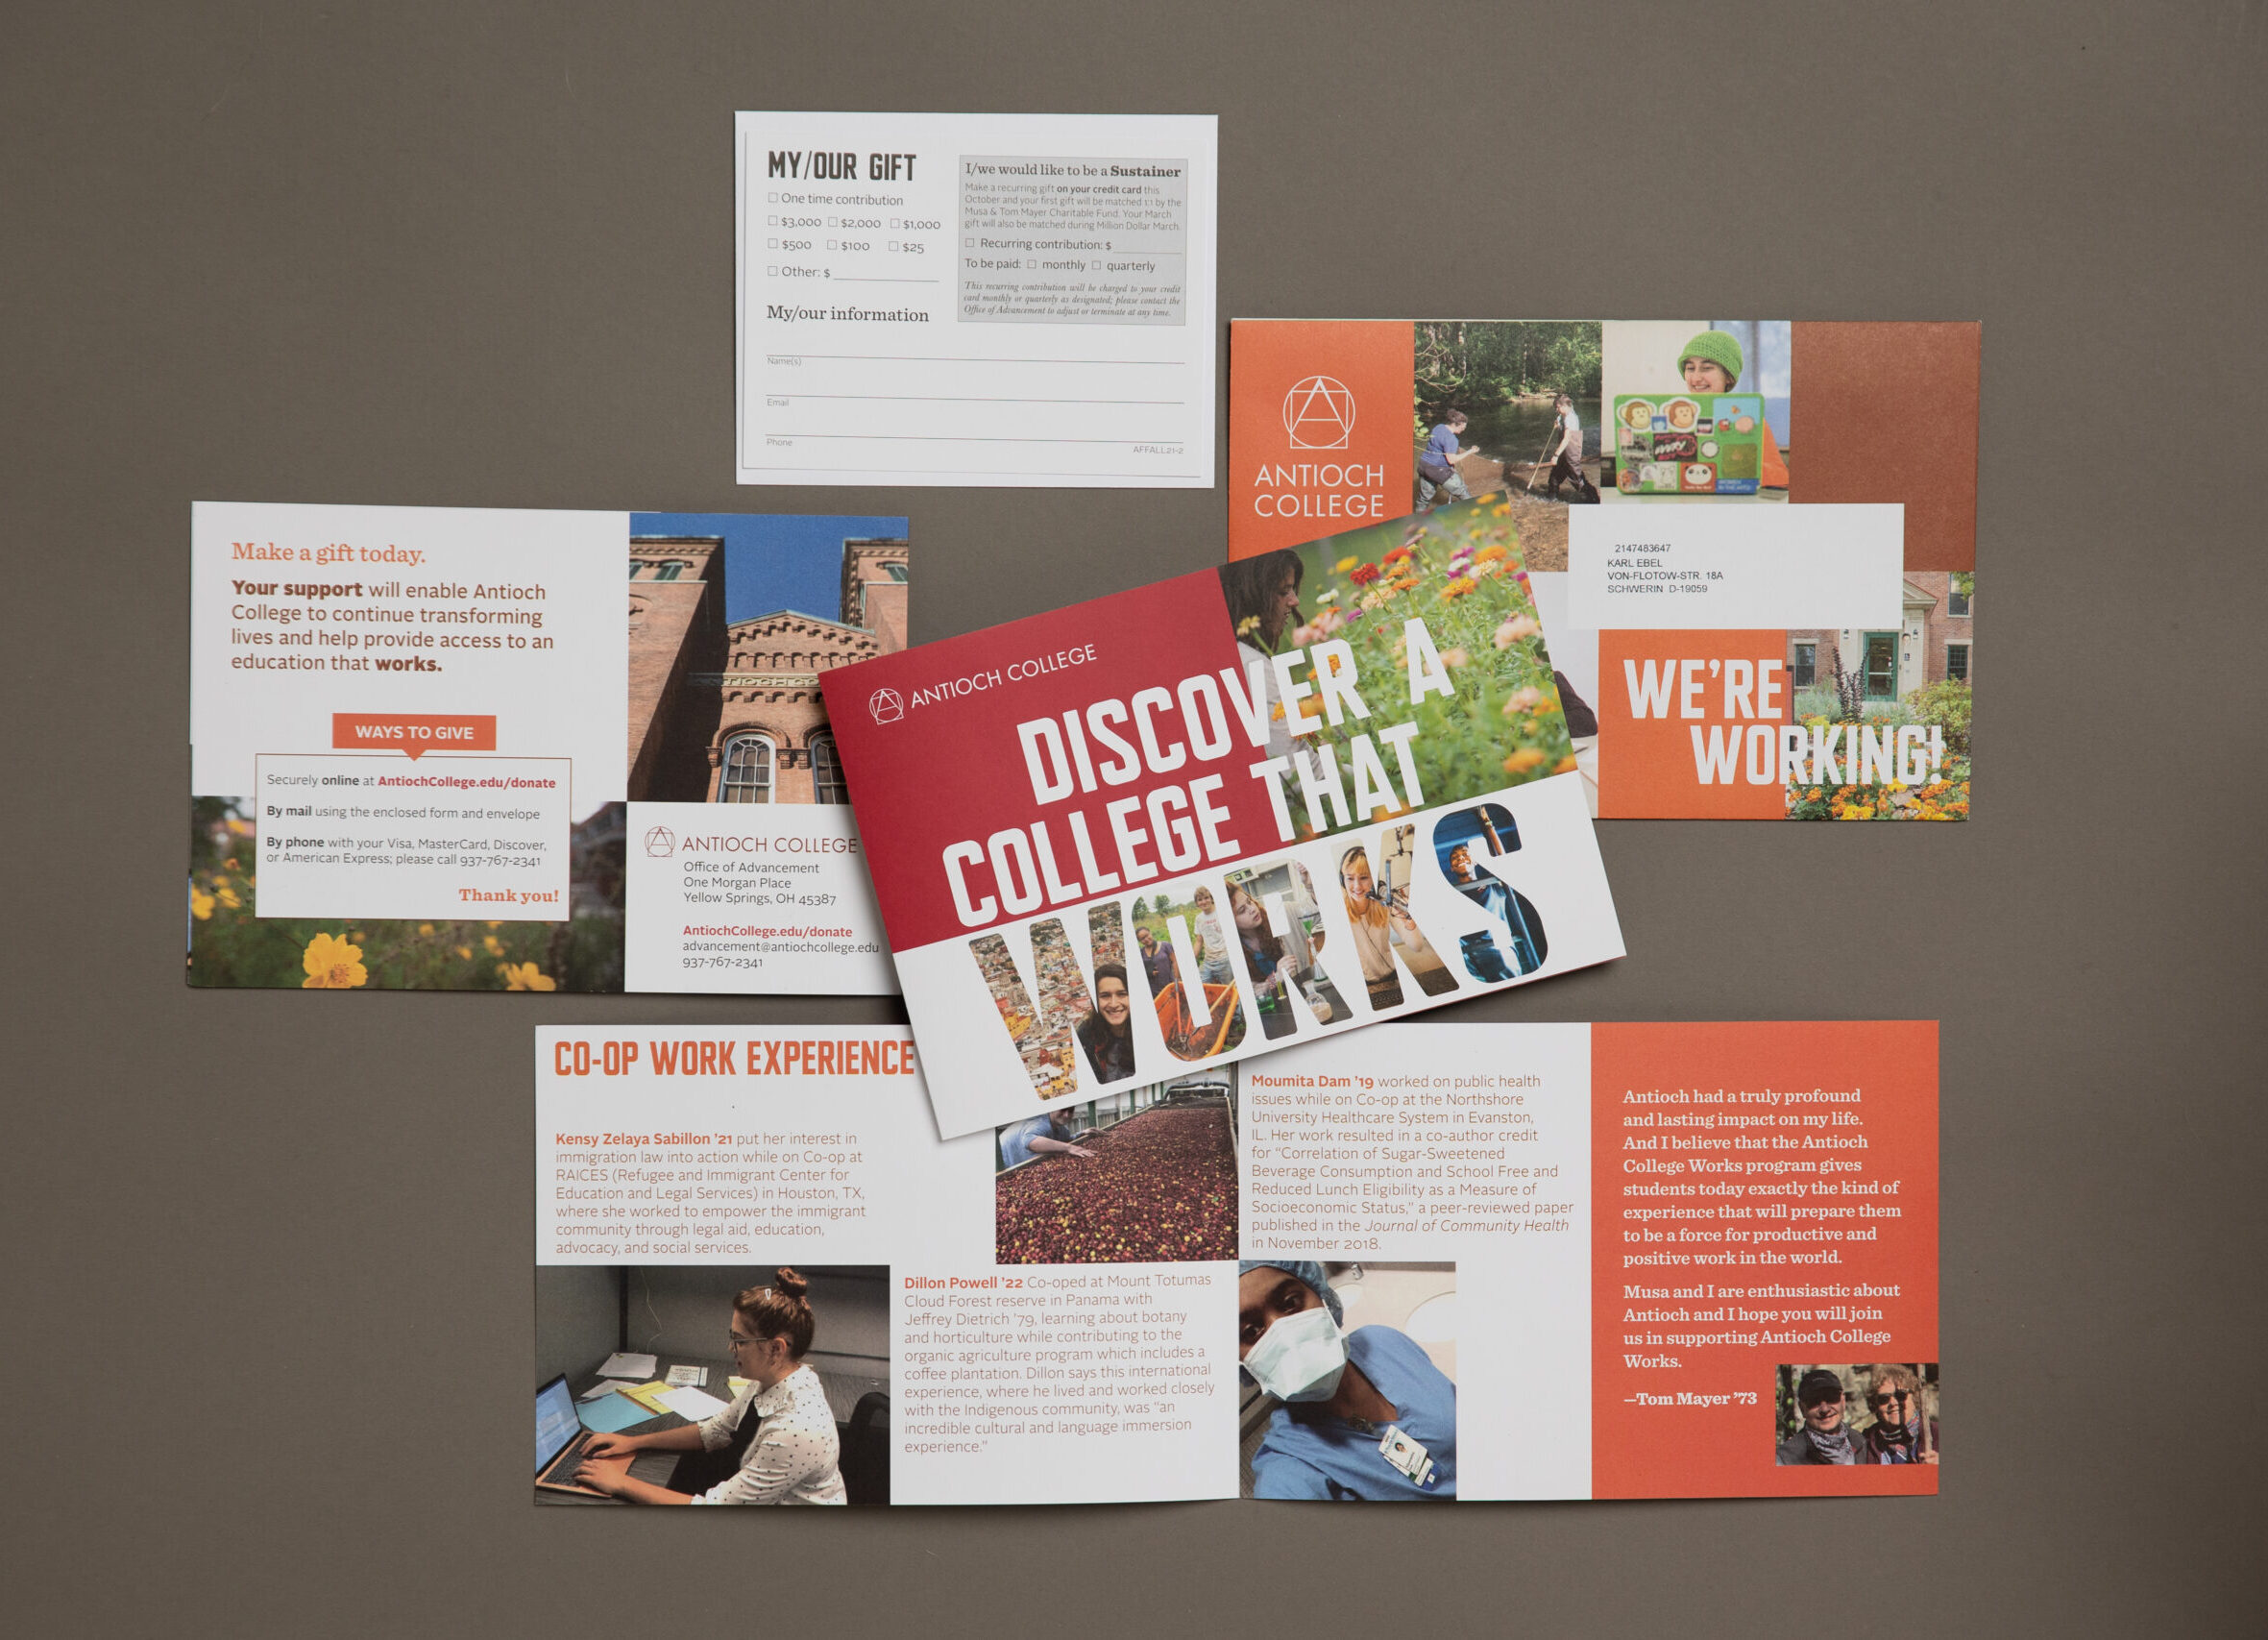 print mail fundraising letter by Oregon Printing in Dayton OH for Antioch College